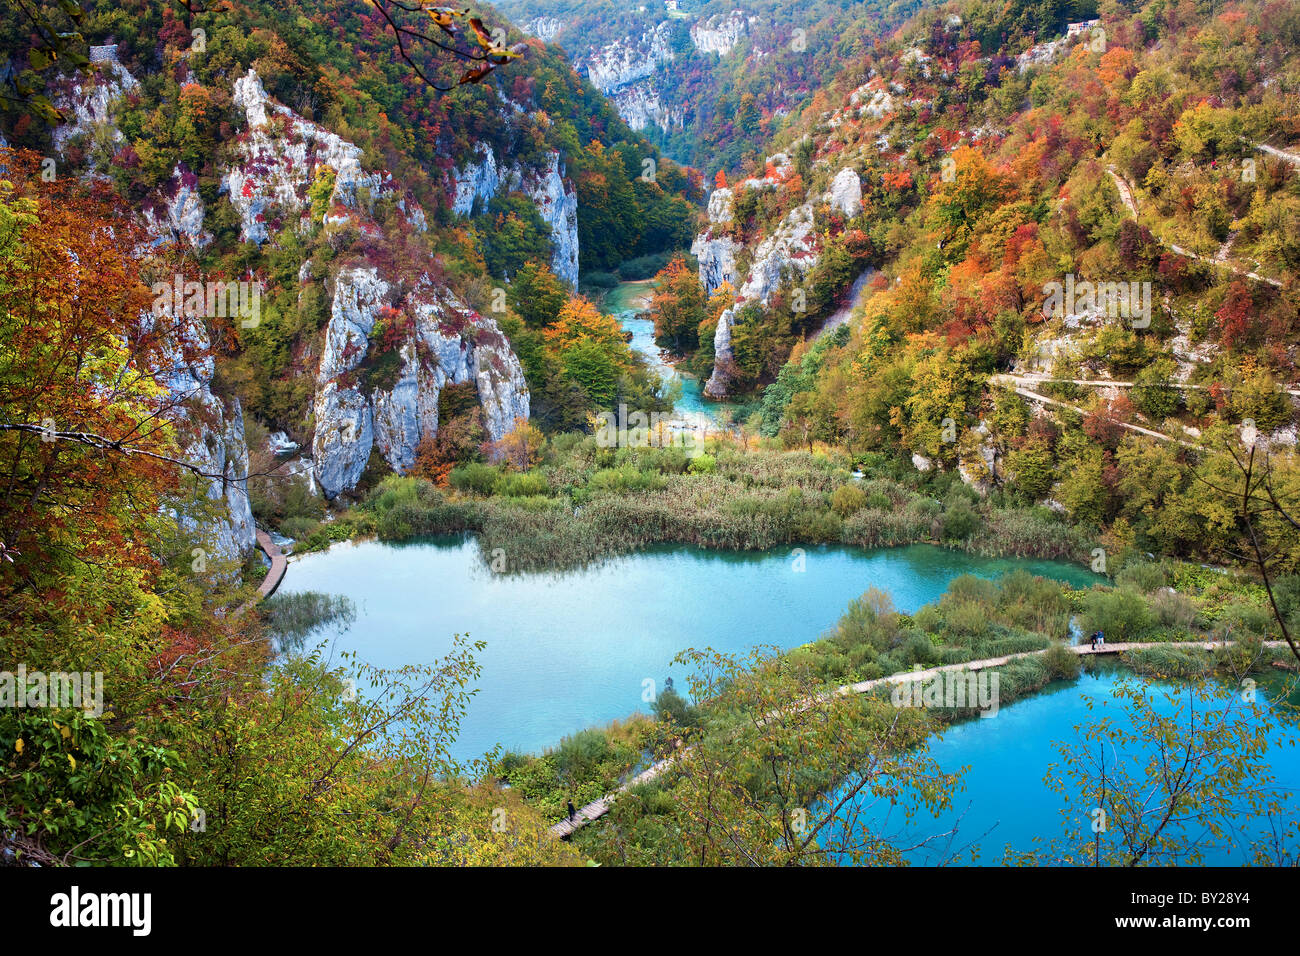 Scenic fall valley landscape in the mountains of Plitvice Lakes National Park, Croatia - Stock Image